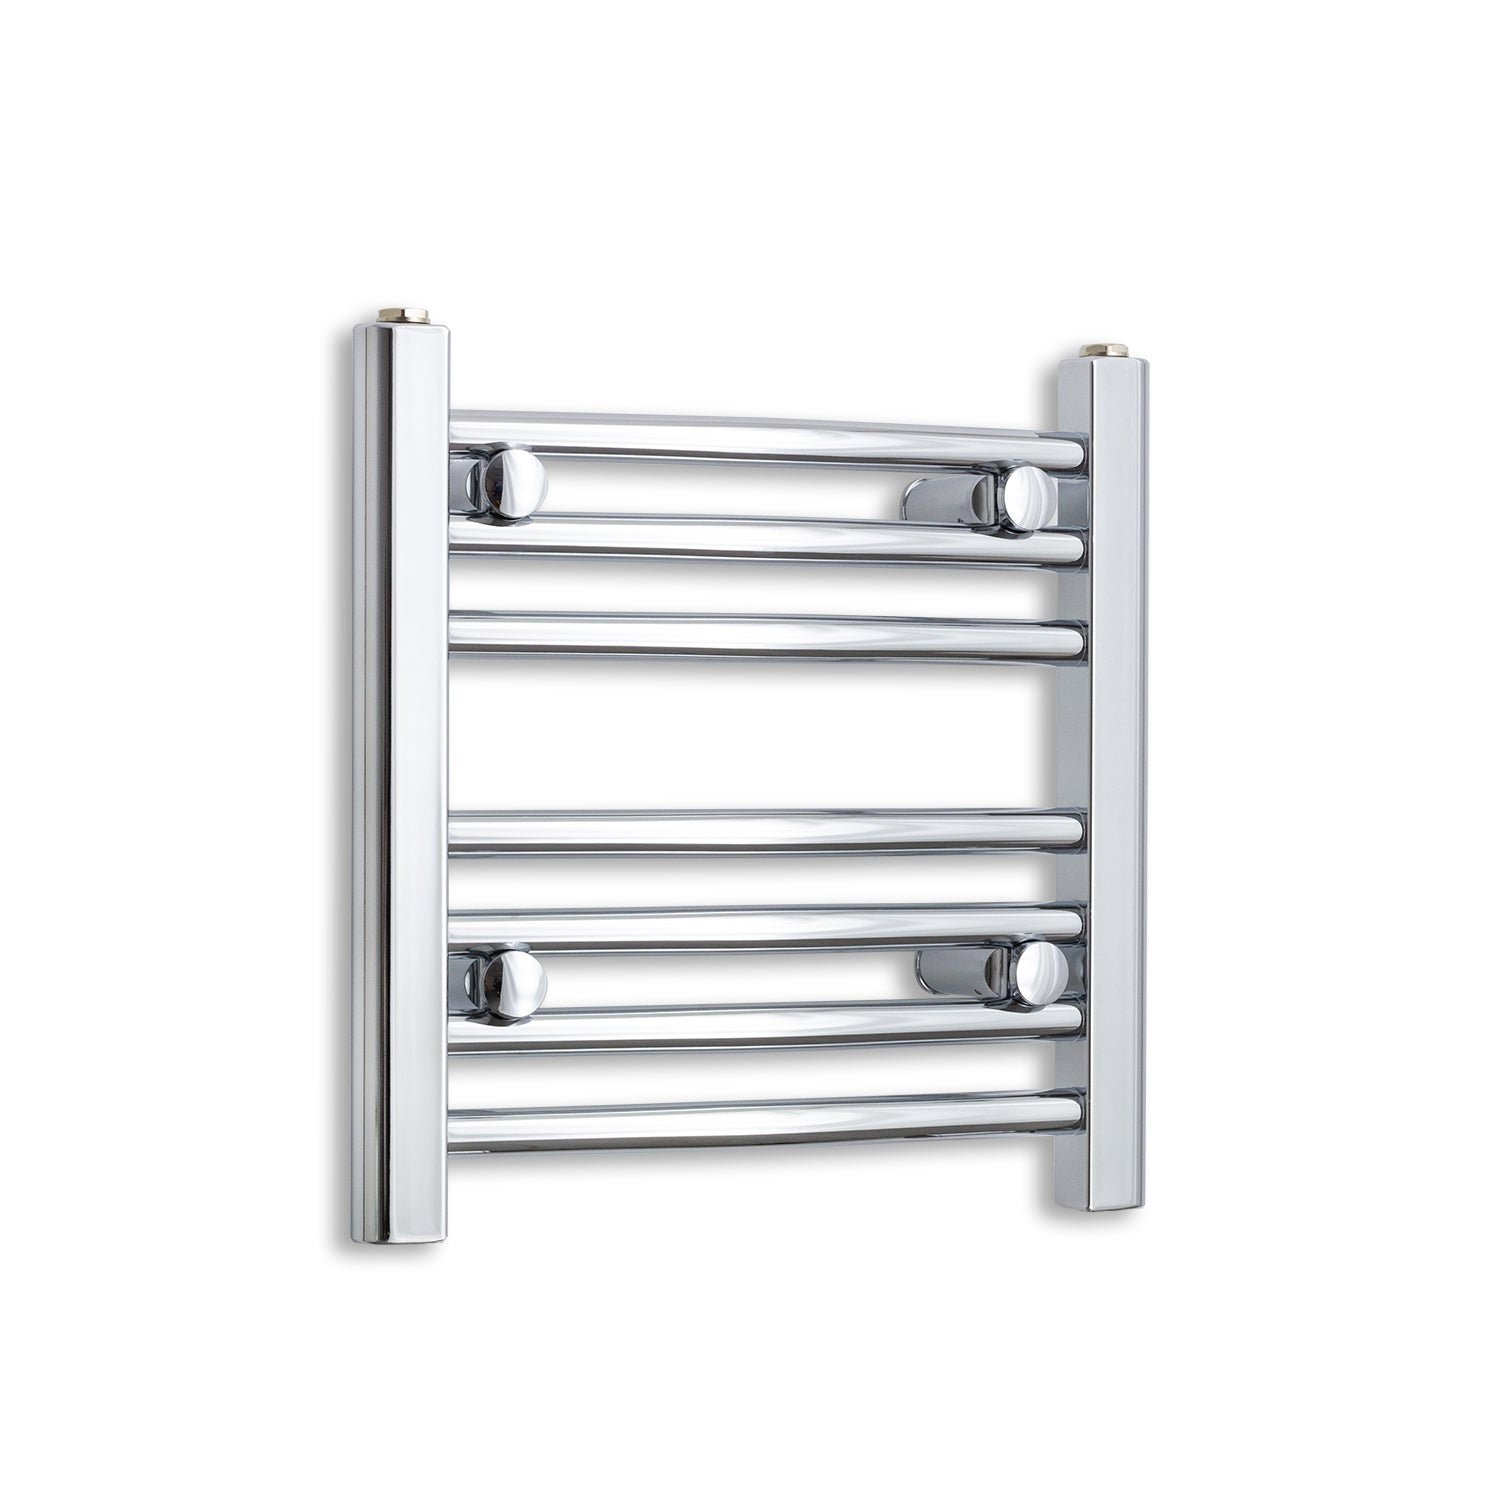 400mm Wide 400mm High Chrome Towel Rail Radiator